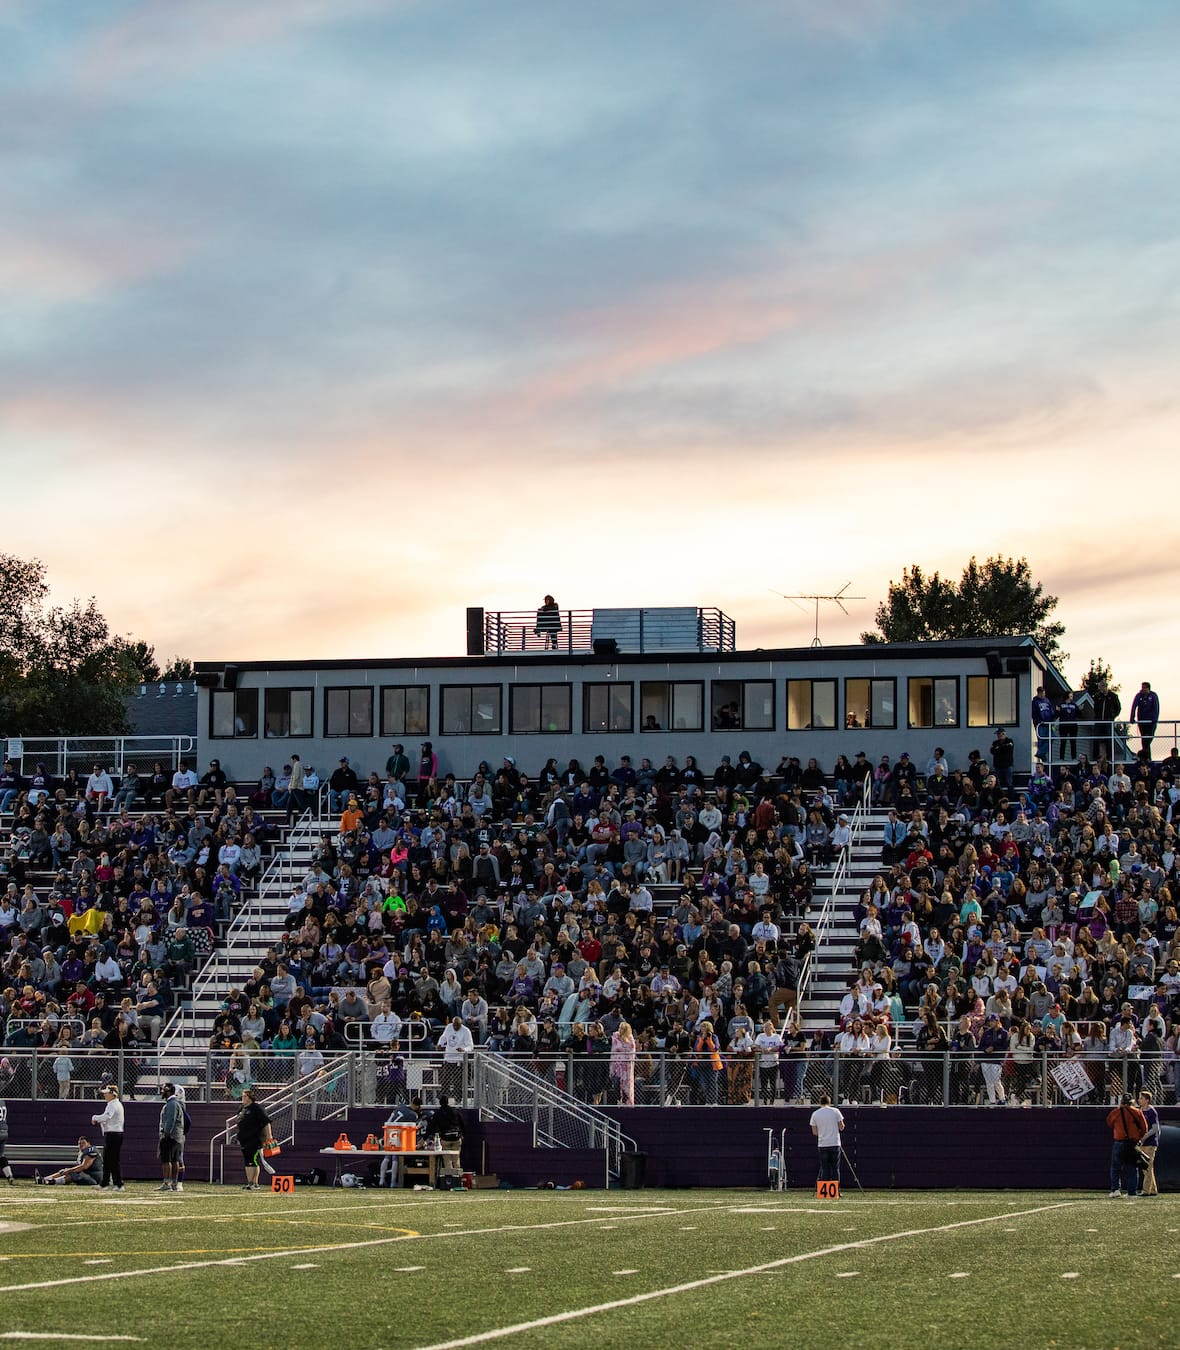 homecoming stadium full of fans a crown college event